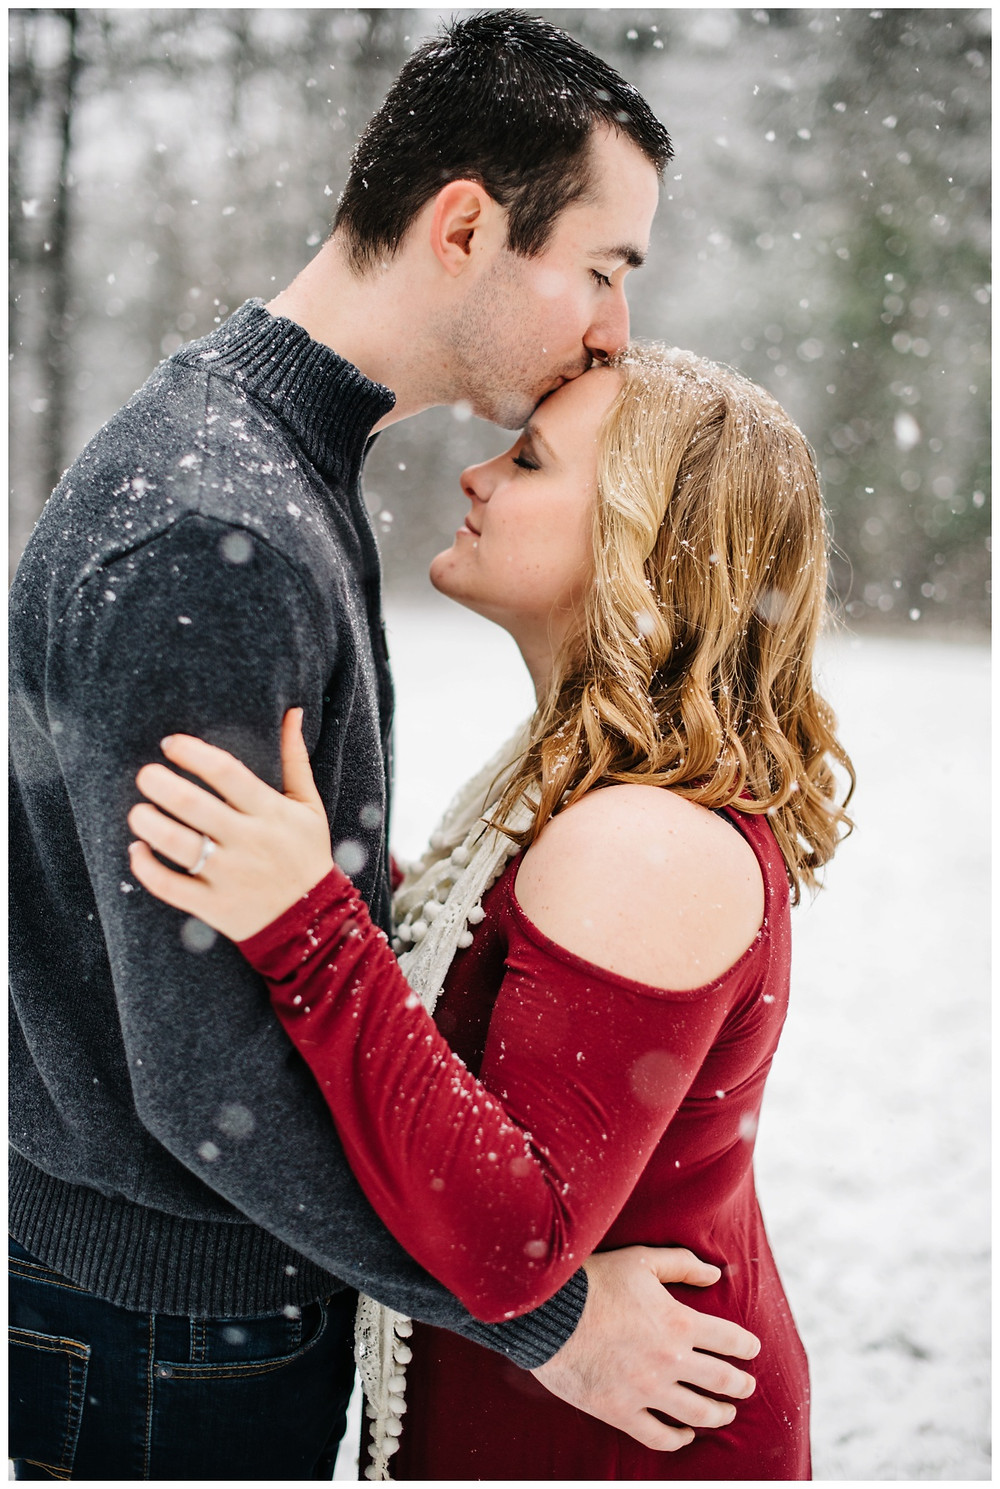 guy-kissing-womans-forehead-at-snowy-sheboygan-engagement-session-by-milwaukee-wedding-photographer-kyra-rane-photography